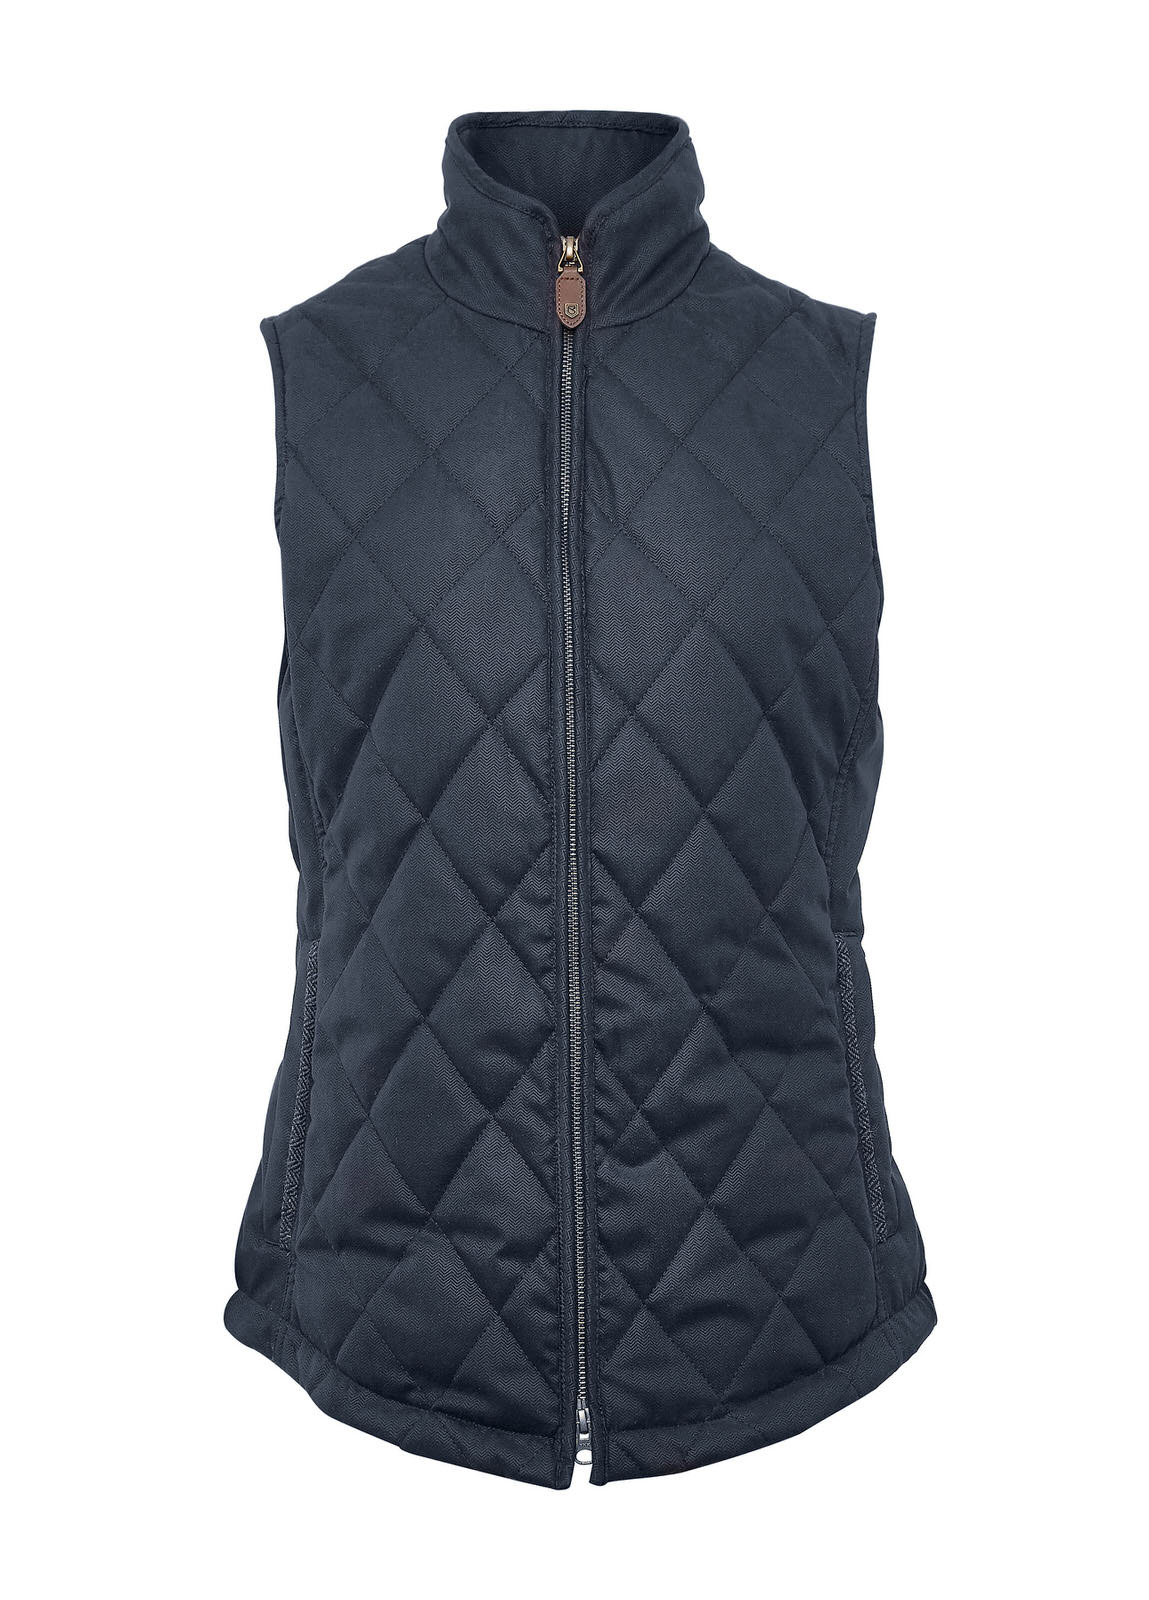 Callaghan_Quilted_Gilet_Navy_Image_1